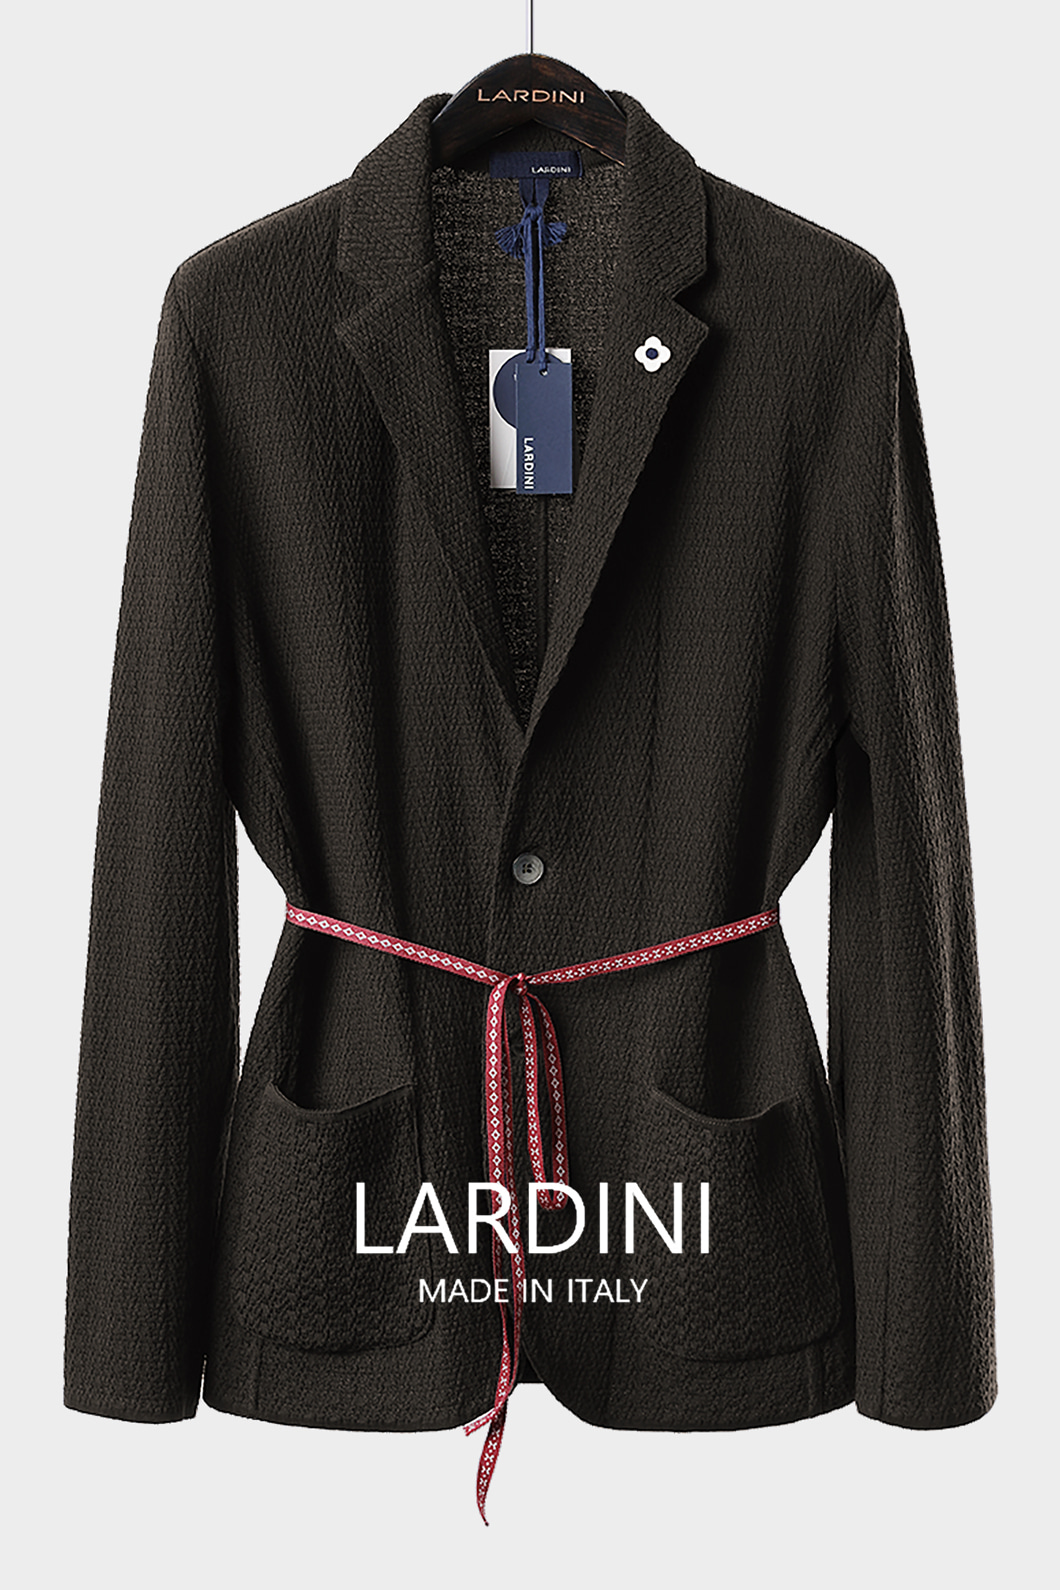 LARDINI SINGLE DIAMOND KNIT JACKET-BROWN[ITALY-Original]-극소량 한정!